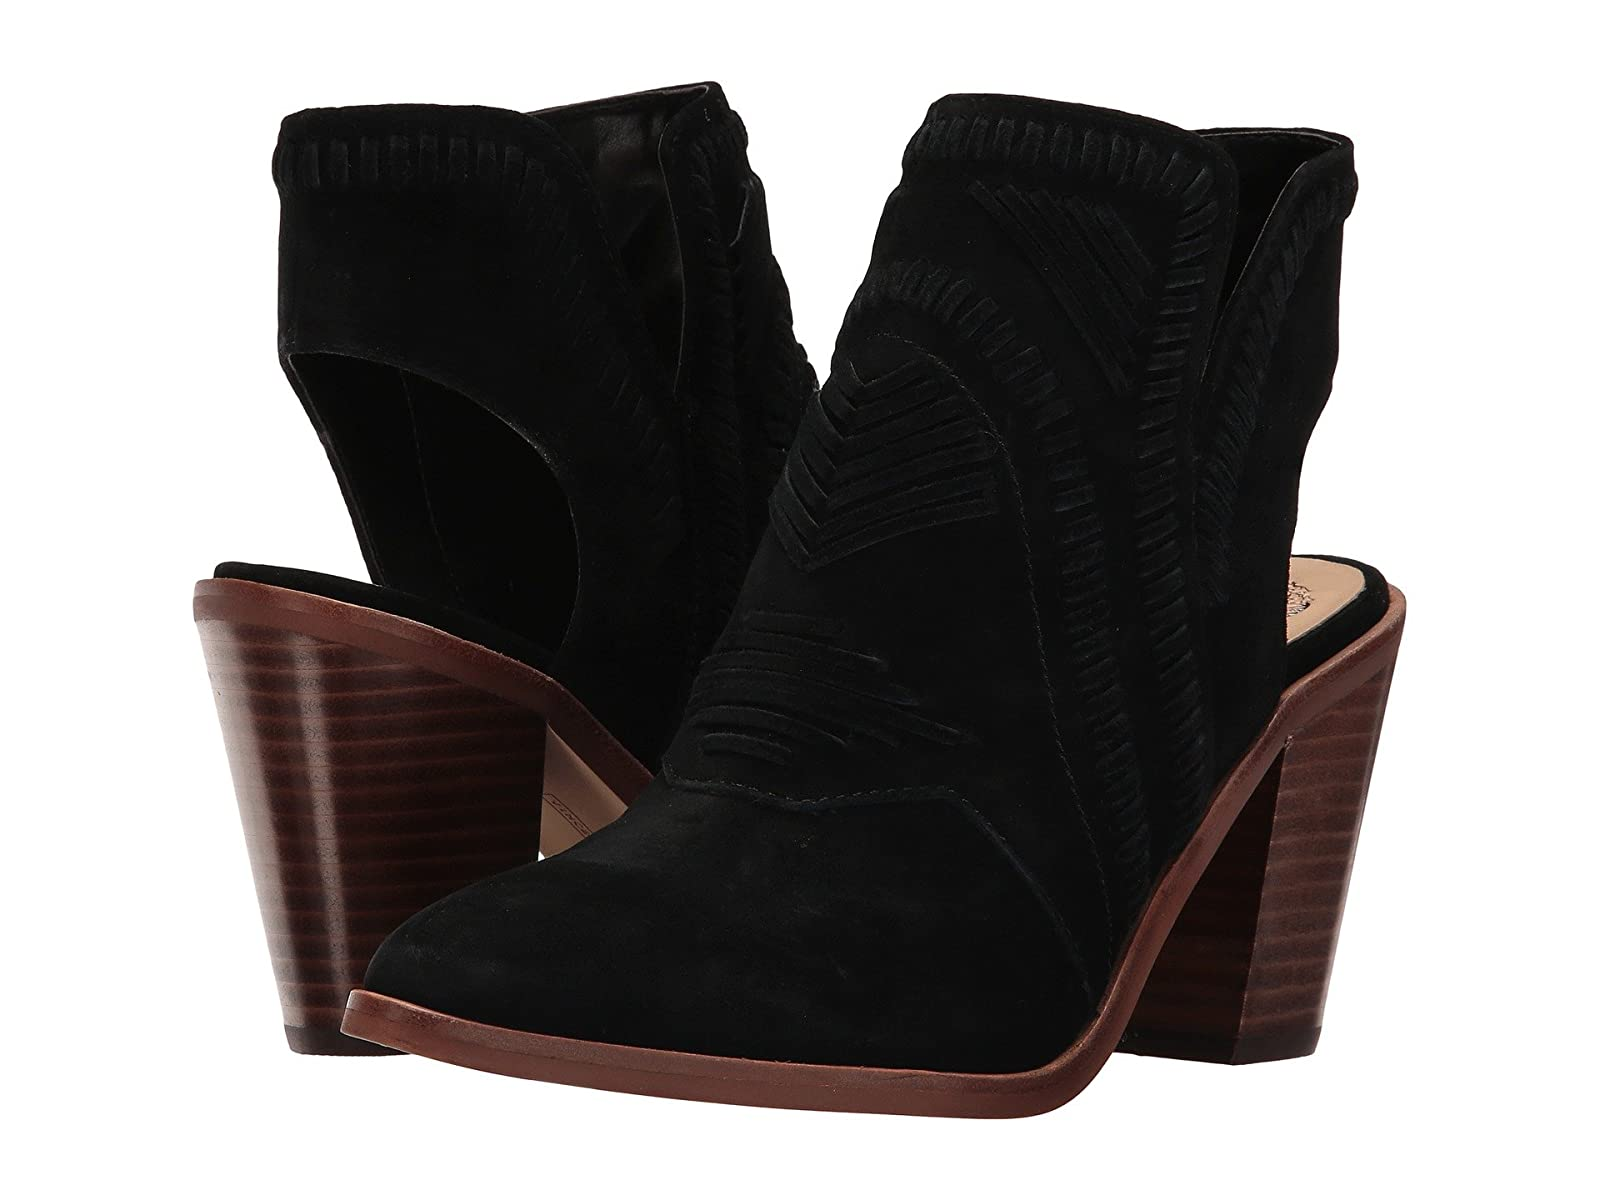 Vince Camuto BinksCheap and distinctive eye-catching shoes